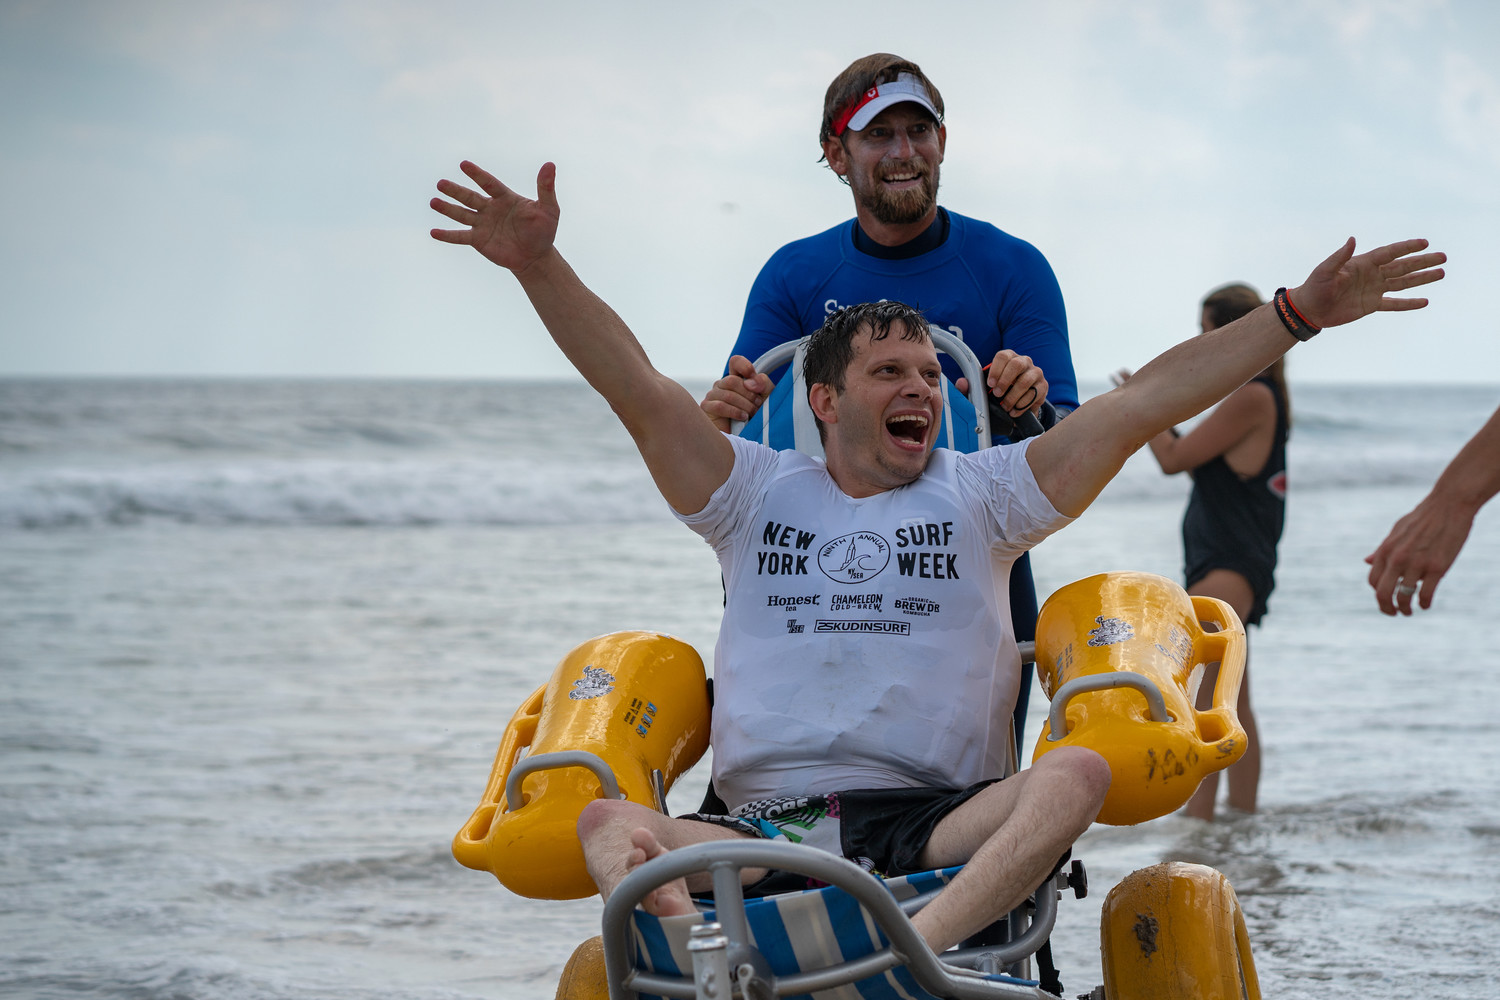 Professional big-wave surfer Will Skudin celebrated with Hofstra University professor and athlete Adam Halpern on July 12 at a surf outing for Surf for All, a local nonprofit organization that provides surfing opportunities for people with disabilities and special needs. The outing was part of the ninth annual NYSEA Surf Week, an event founded by Skudin.